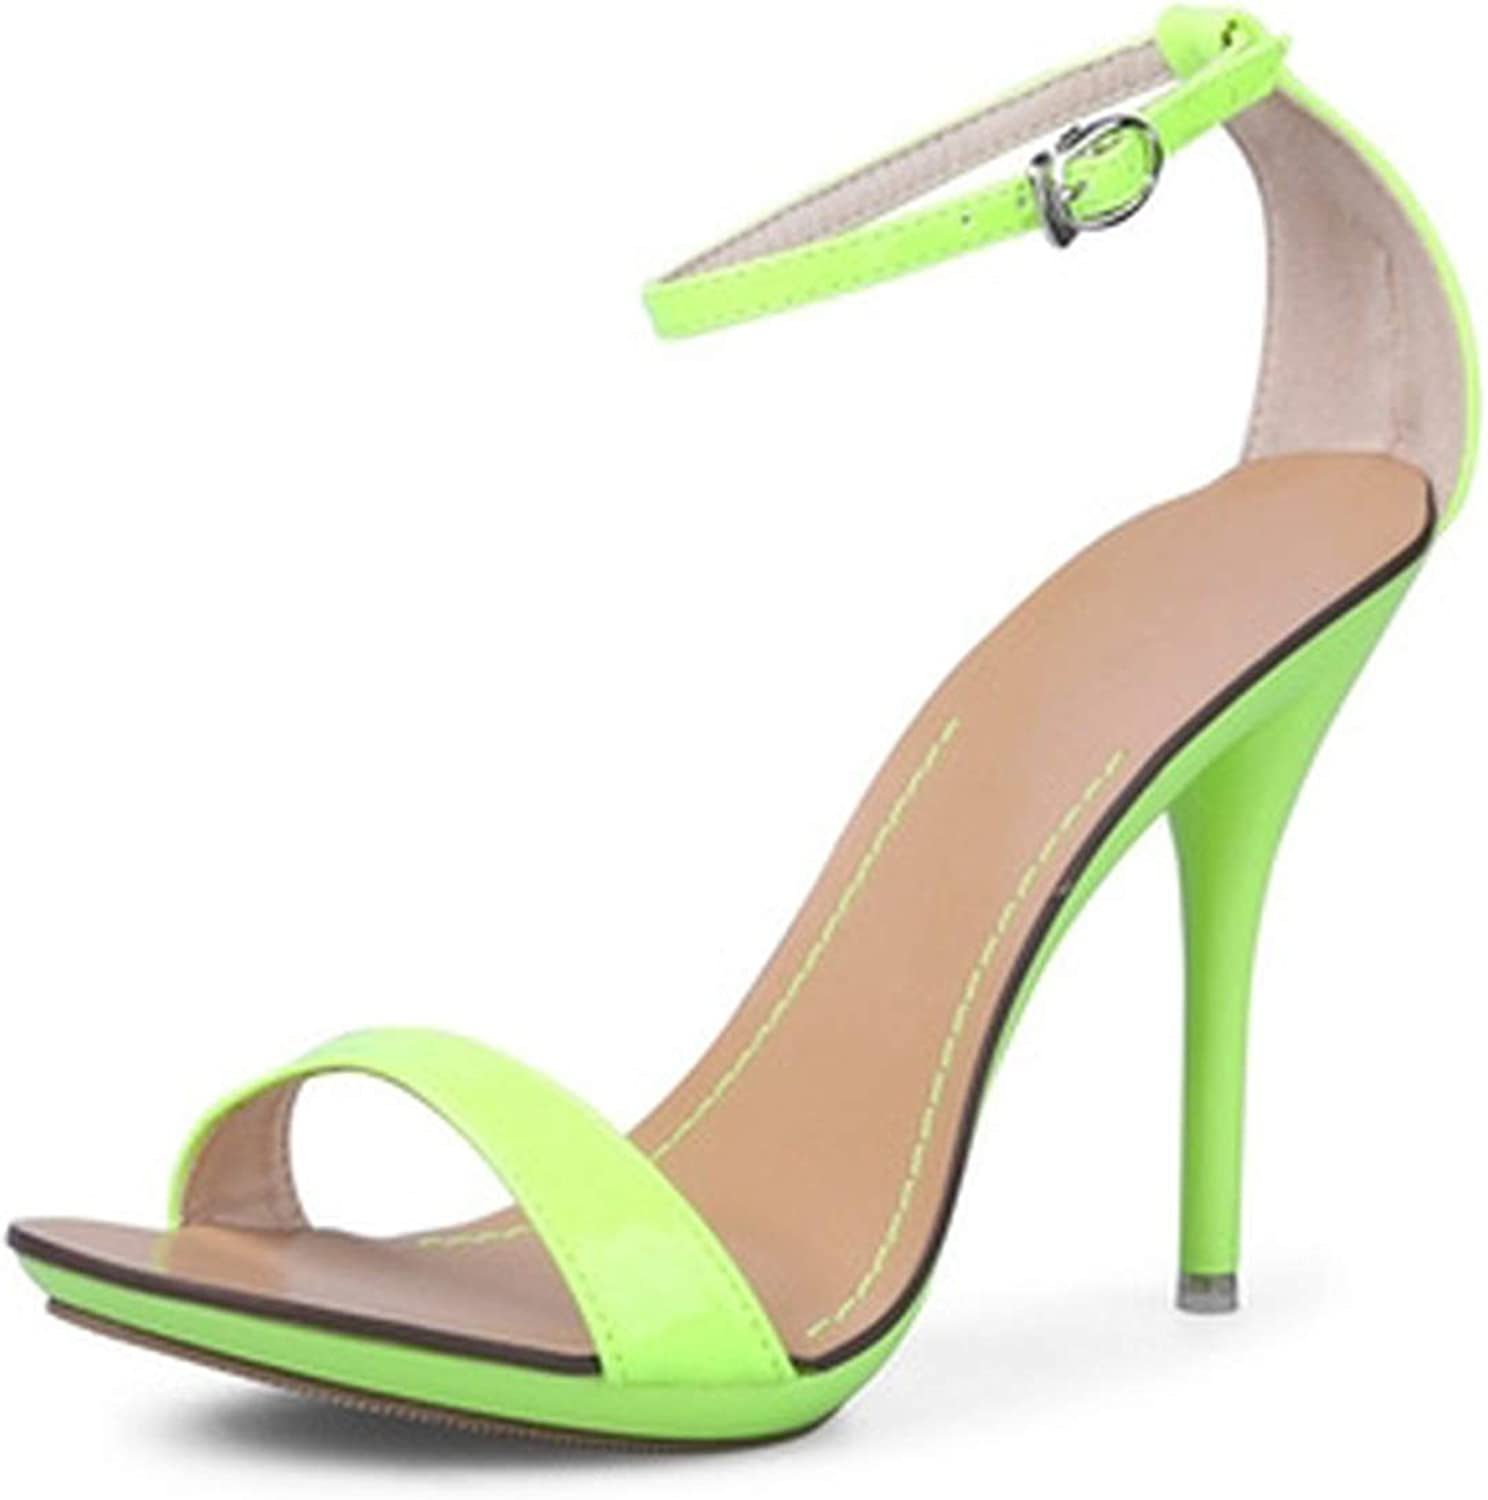 Shine-shine Candy colors Ankle Rap Sandals Gladiator High Heels for Party Wedding Small Big Size 4-11